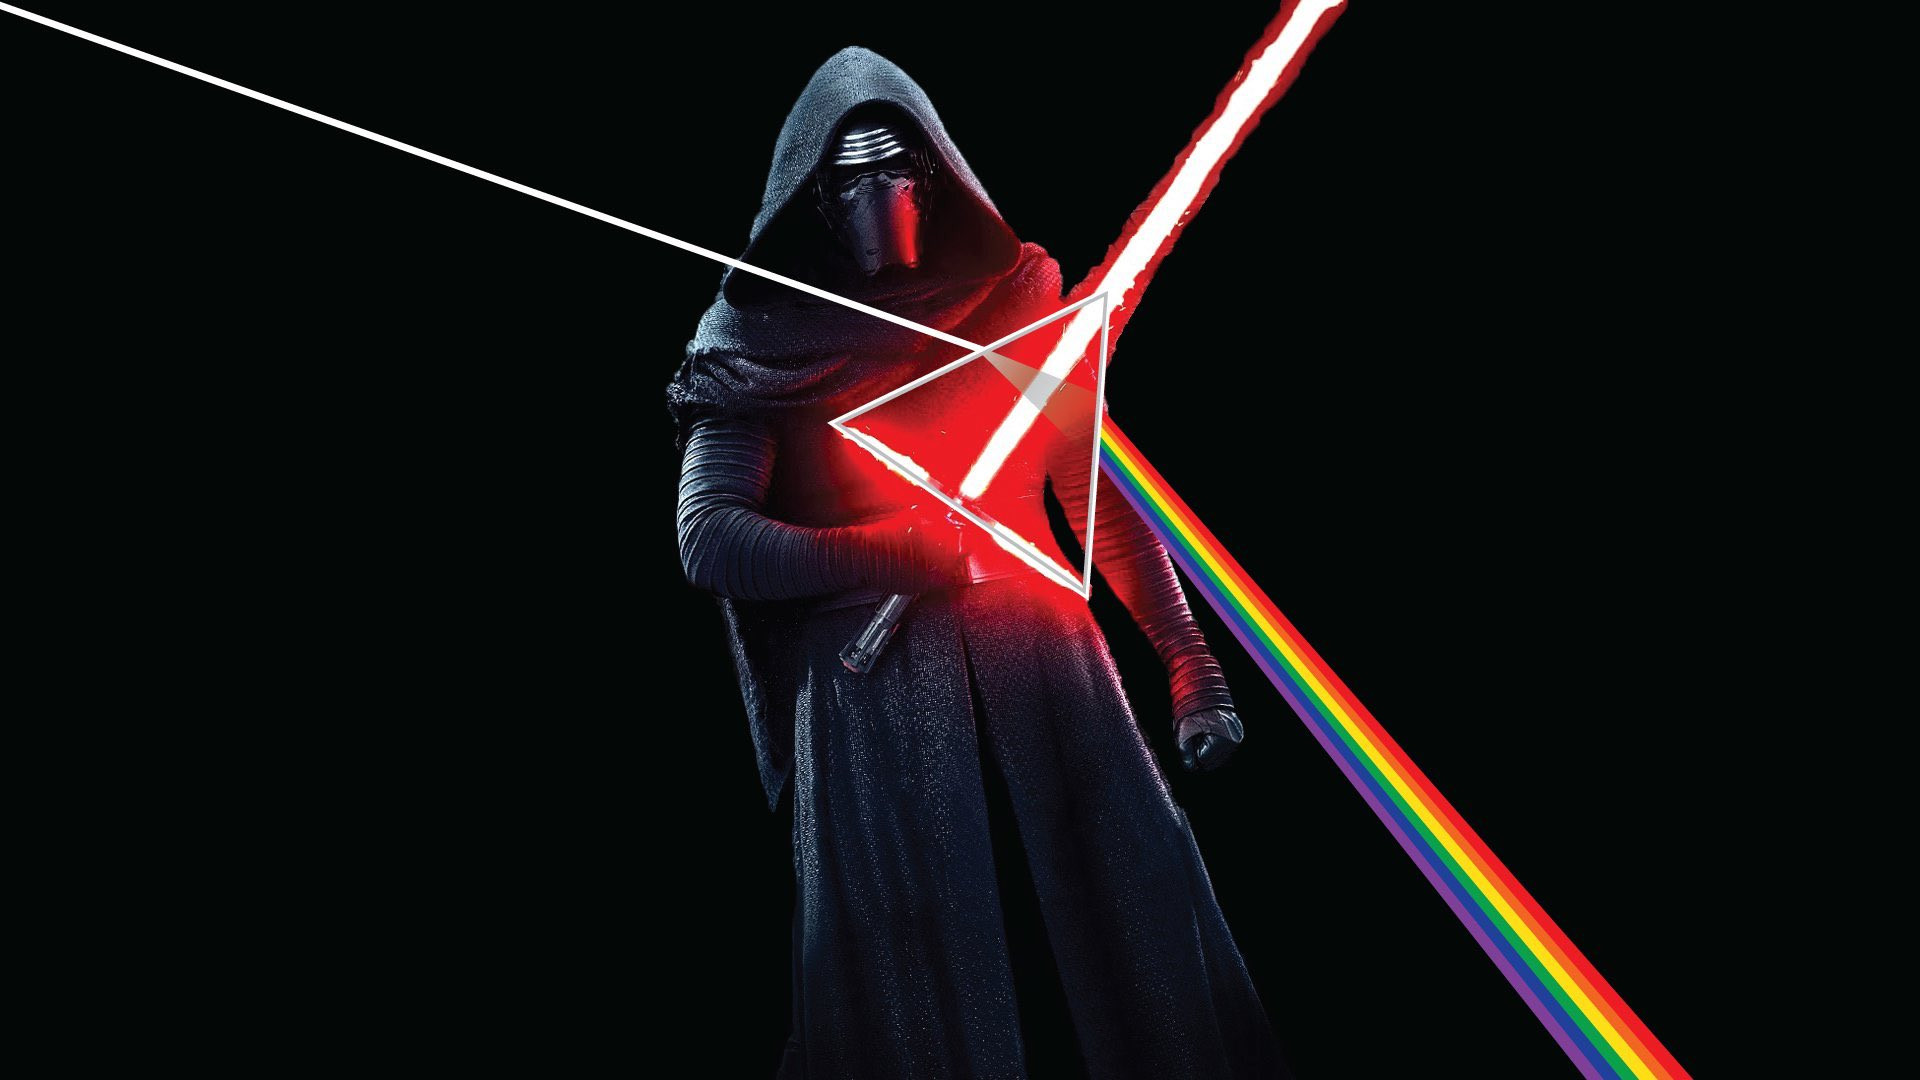 May the Darkside of the 4th be with you #MayThe4thBeWithYou https://t.co/uHY9nEGApP